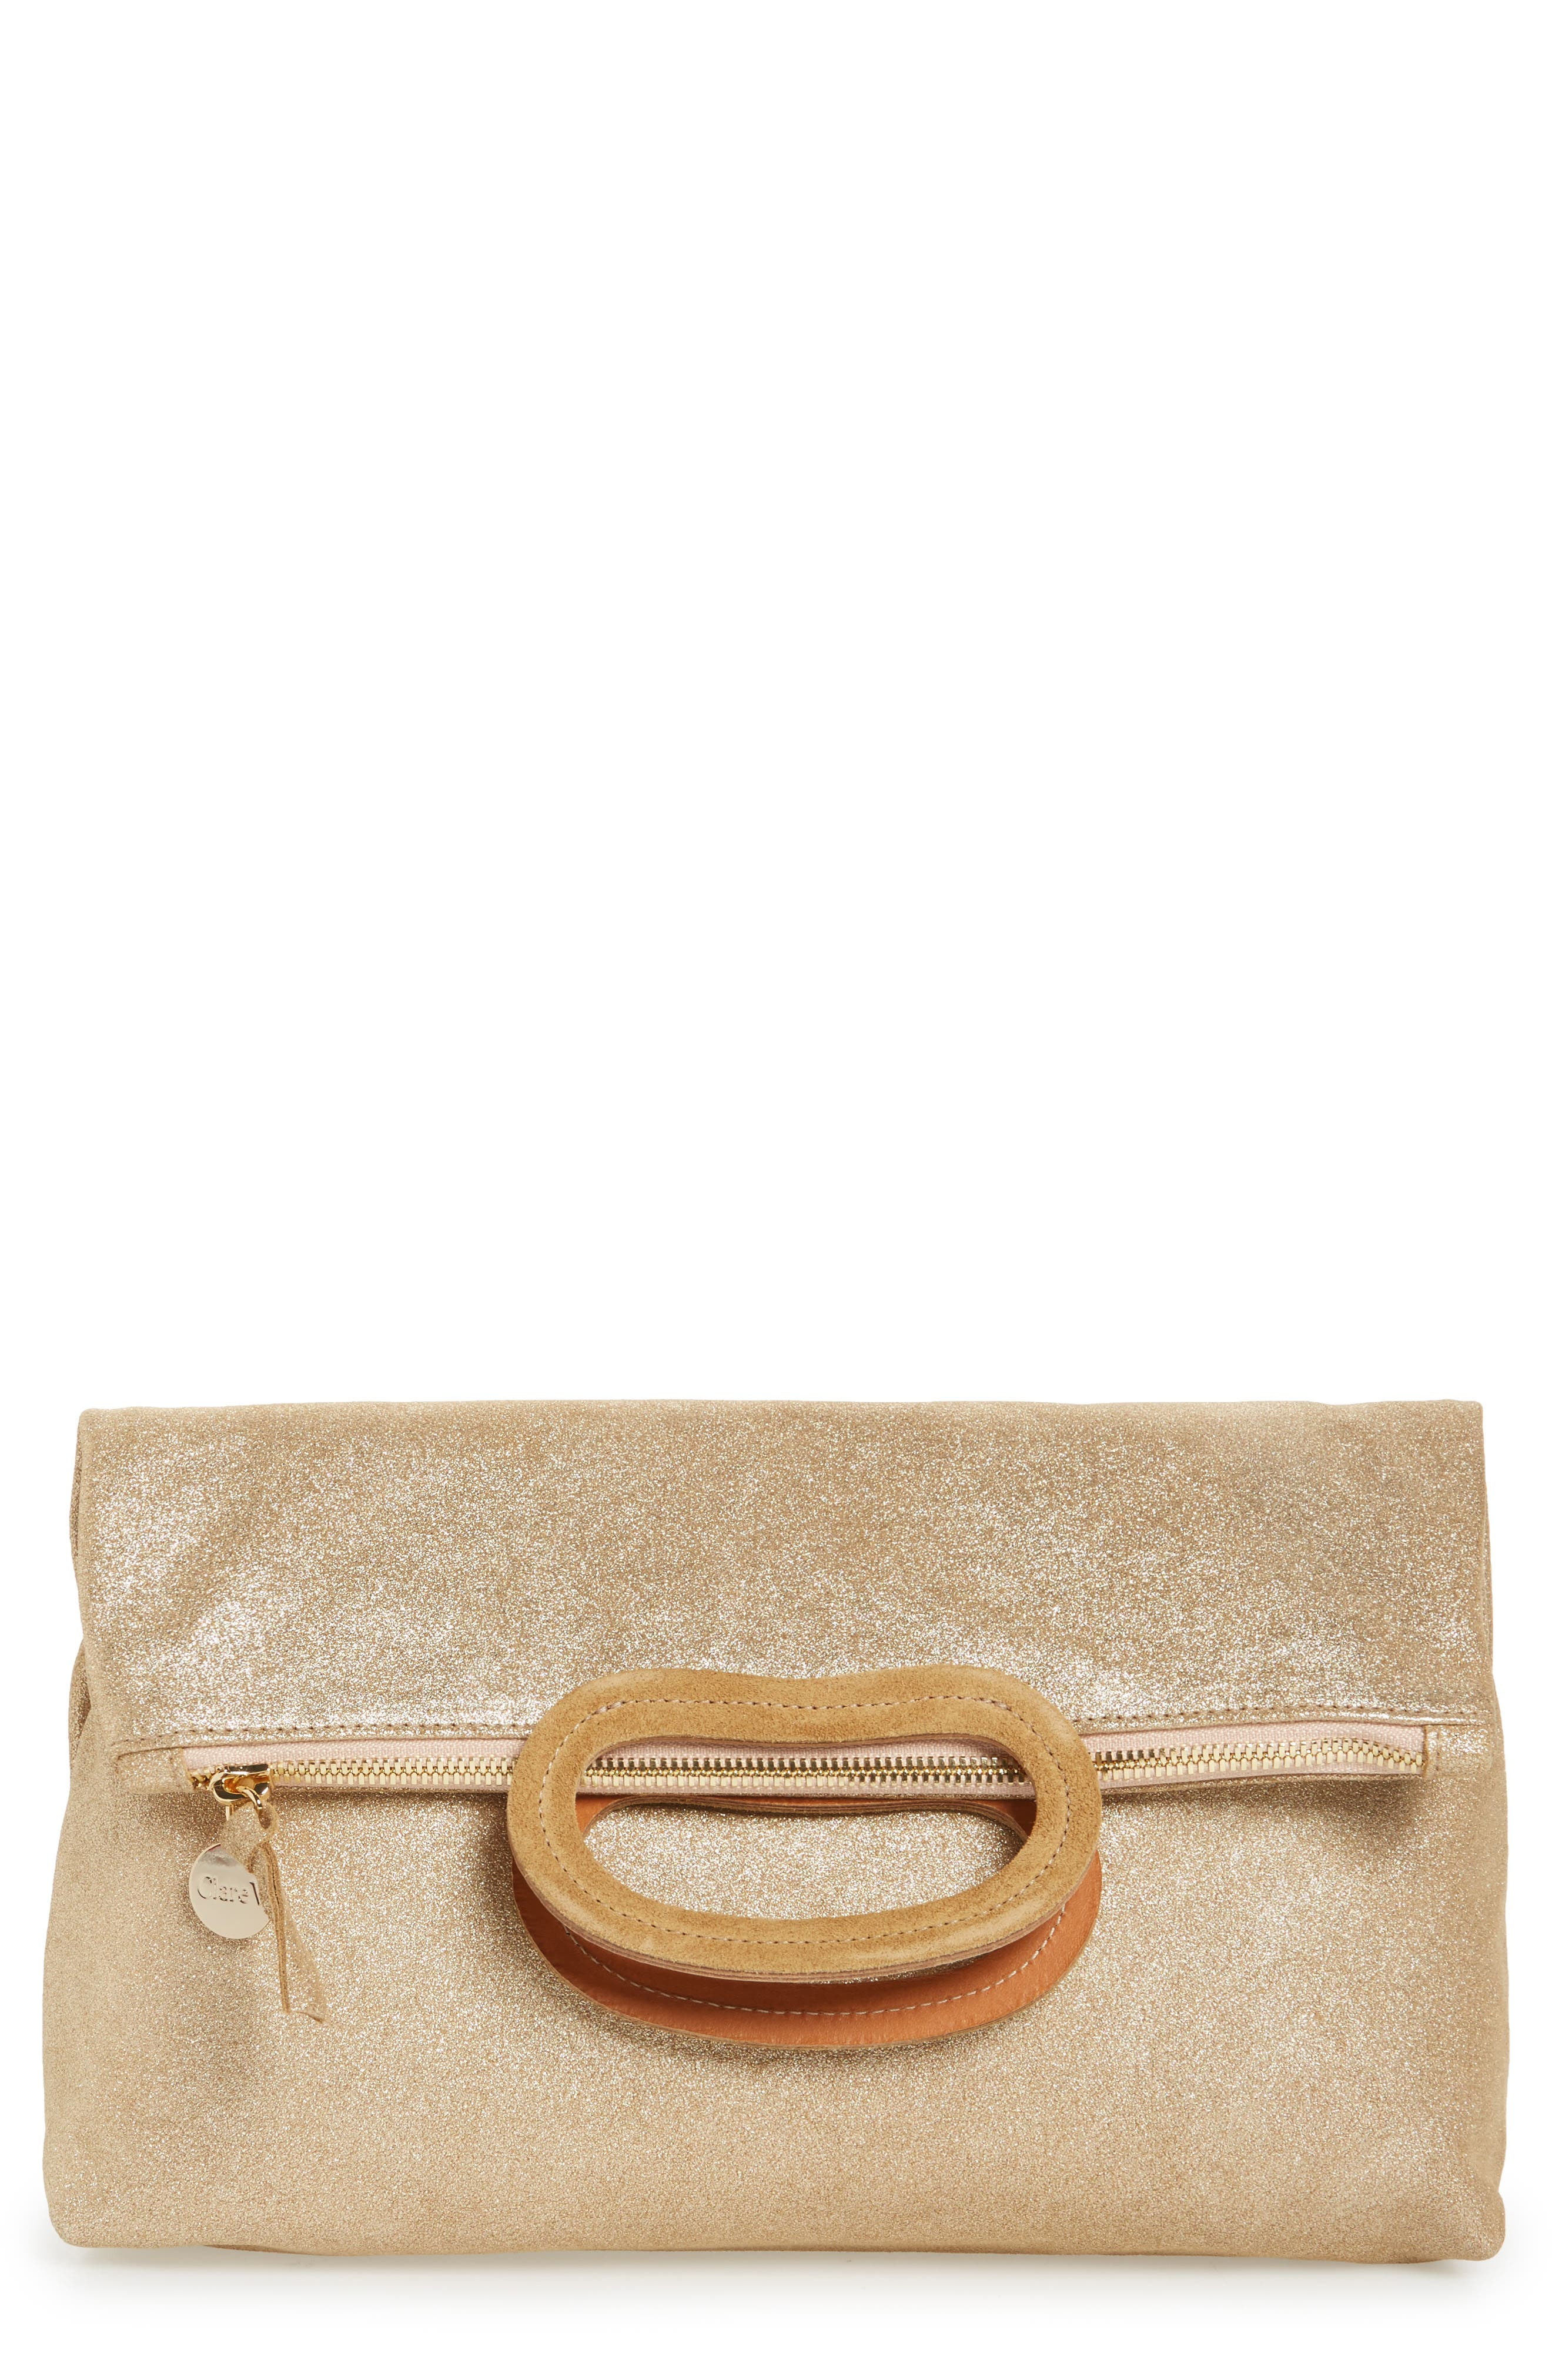 Clare V. Marcelle Maison Leather Tote